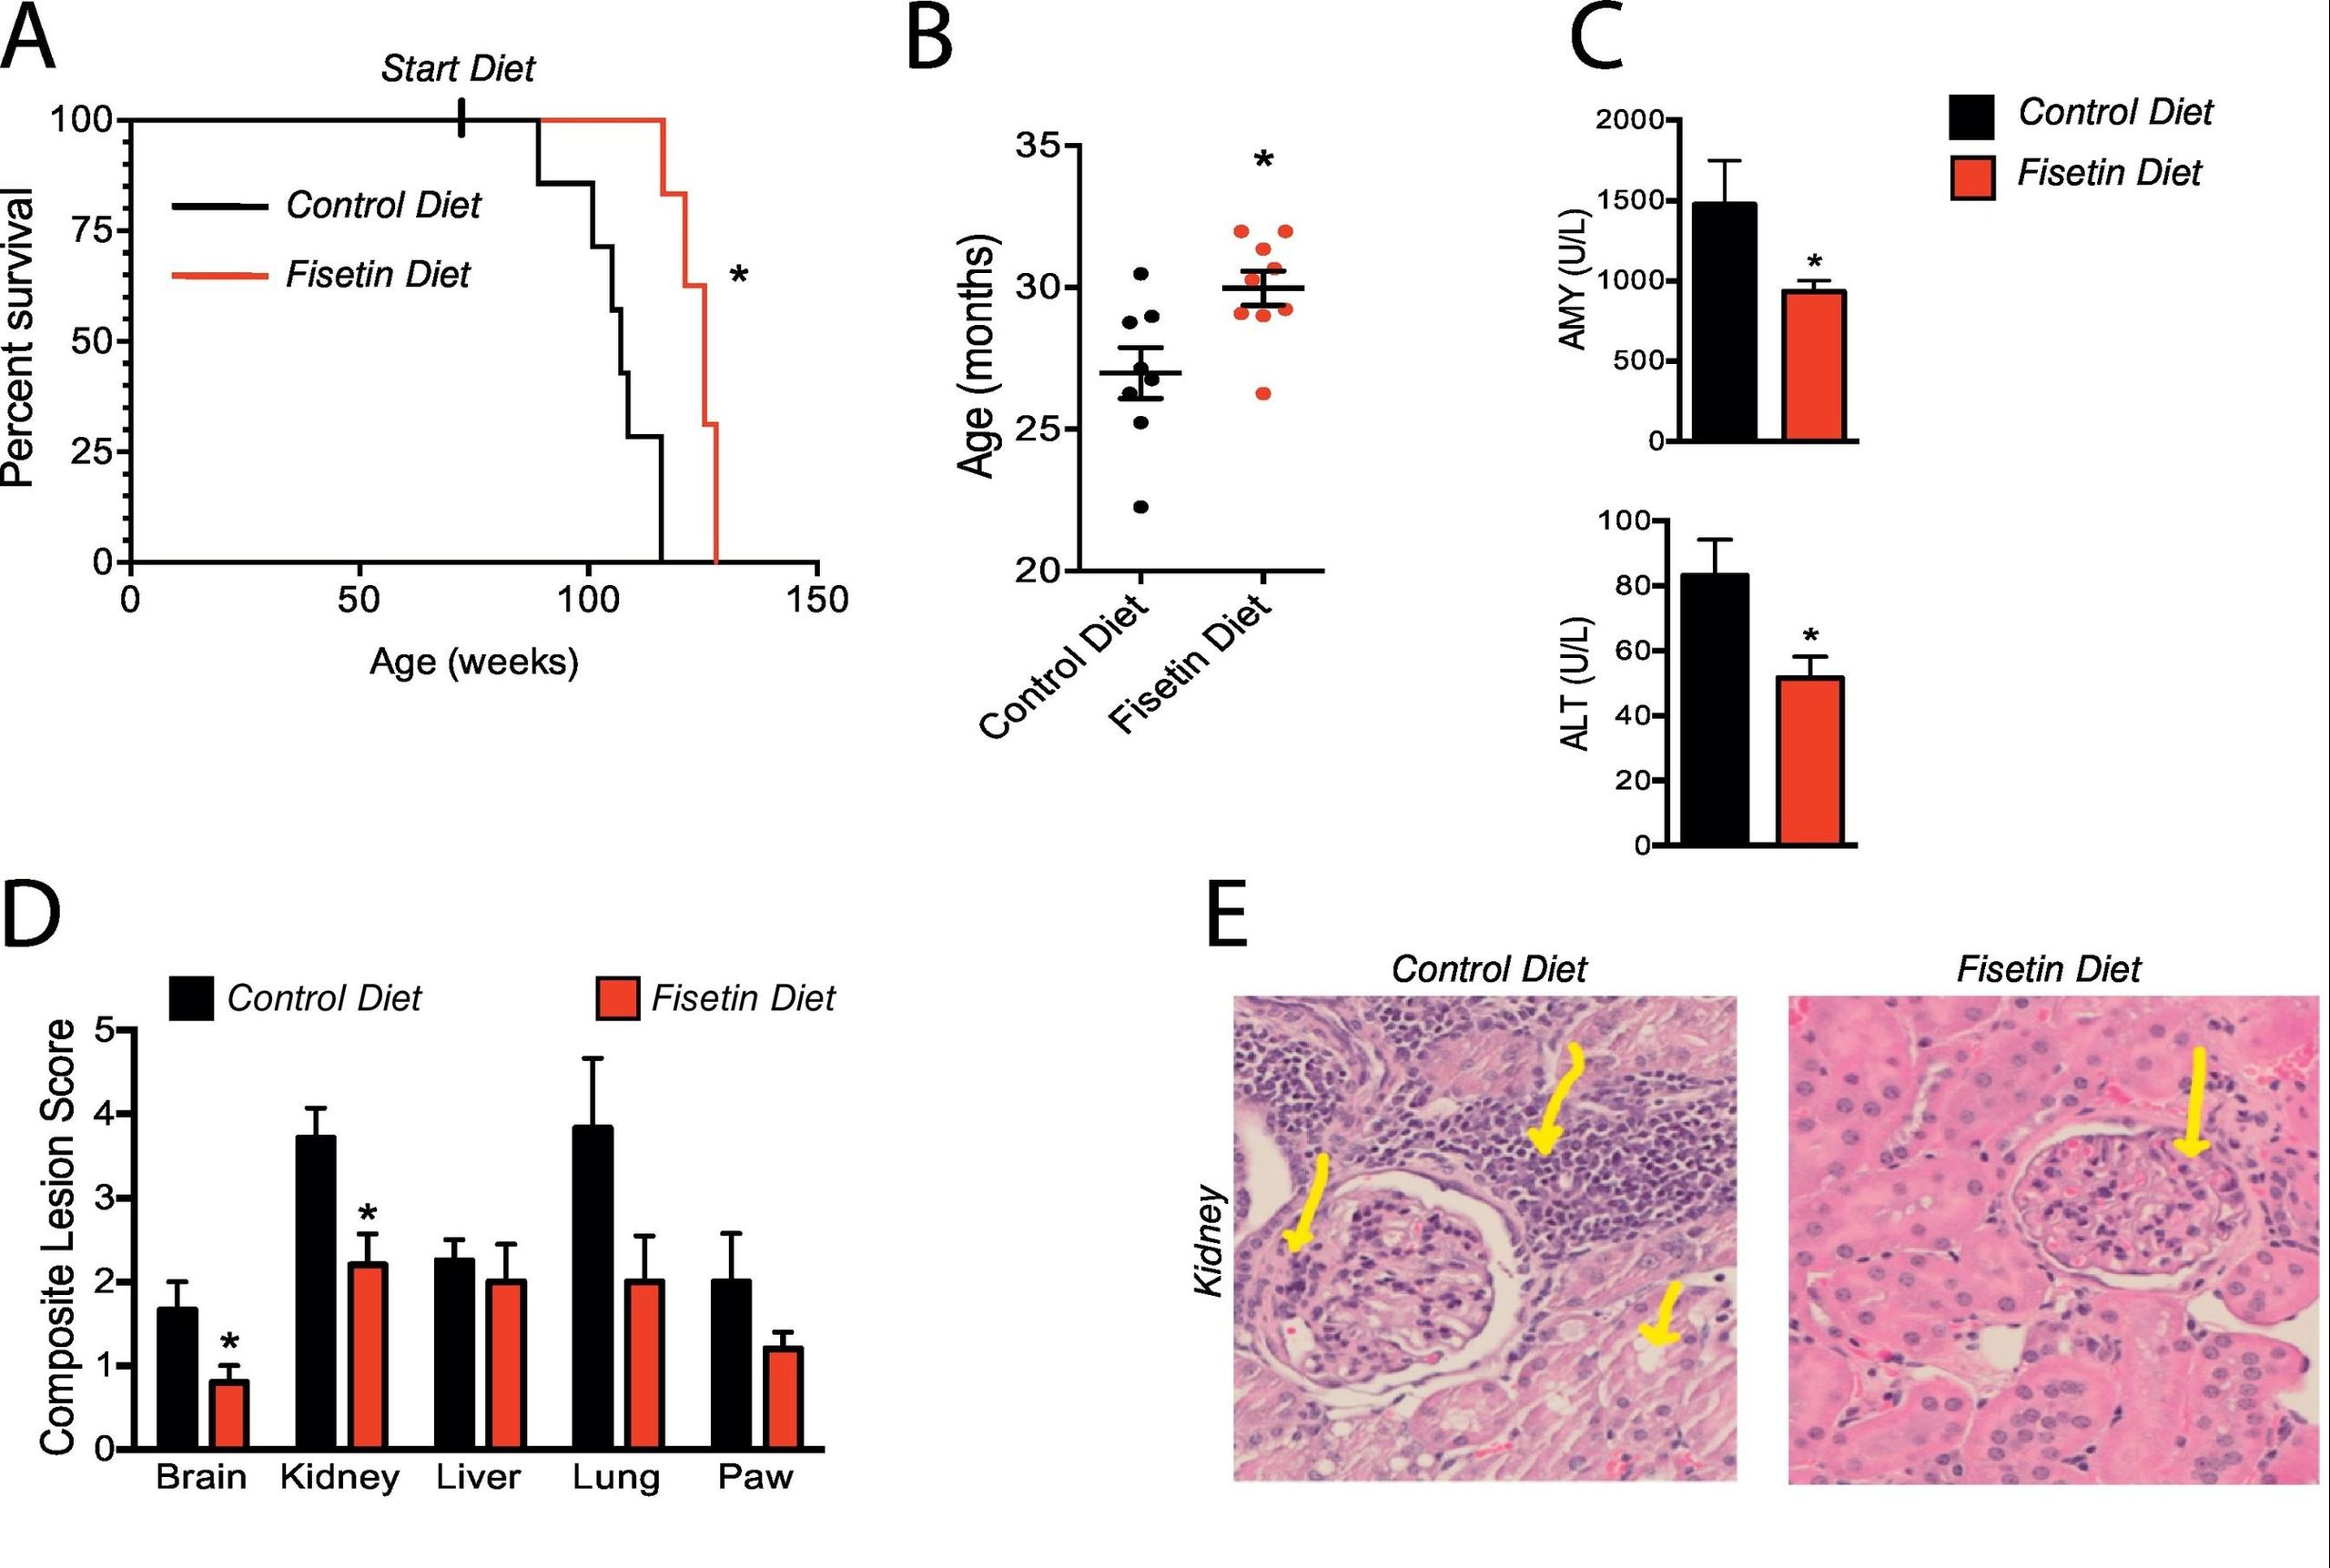 Late-life intervention with fisetin in aged wild-type mice extends health span and lifespan. Source: 10.1016/j.ebiom.2018.09.015